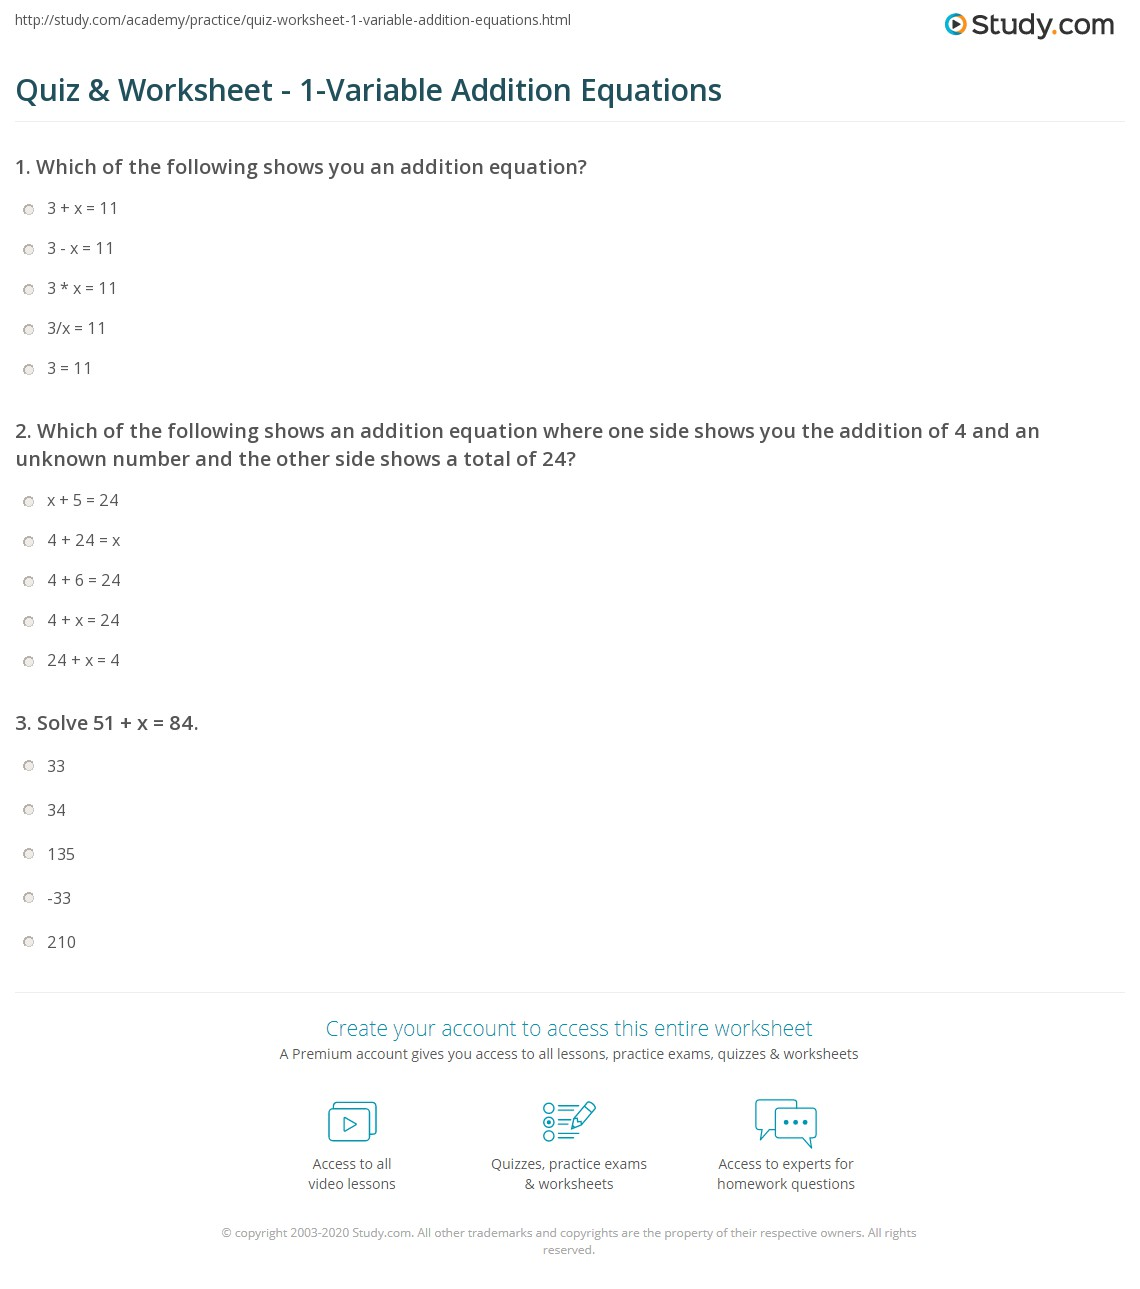 math worksheet : quiz  worksheet  1 variable addition equations  study  : Addition Equations Worksheets